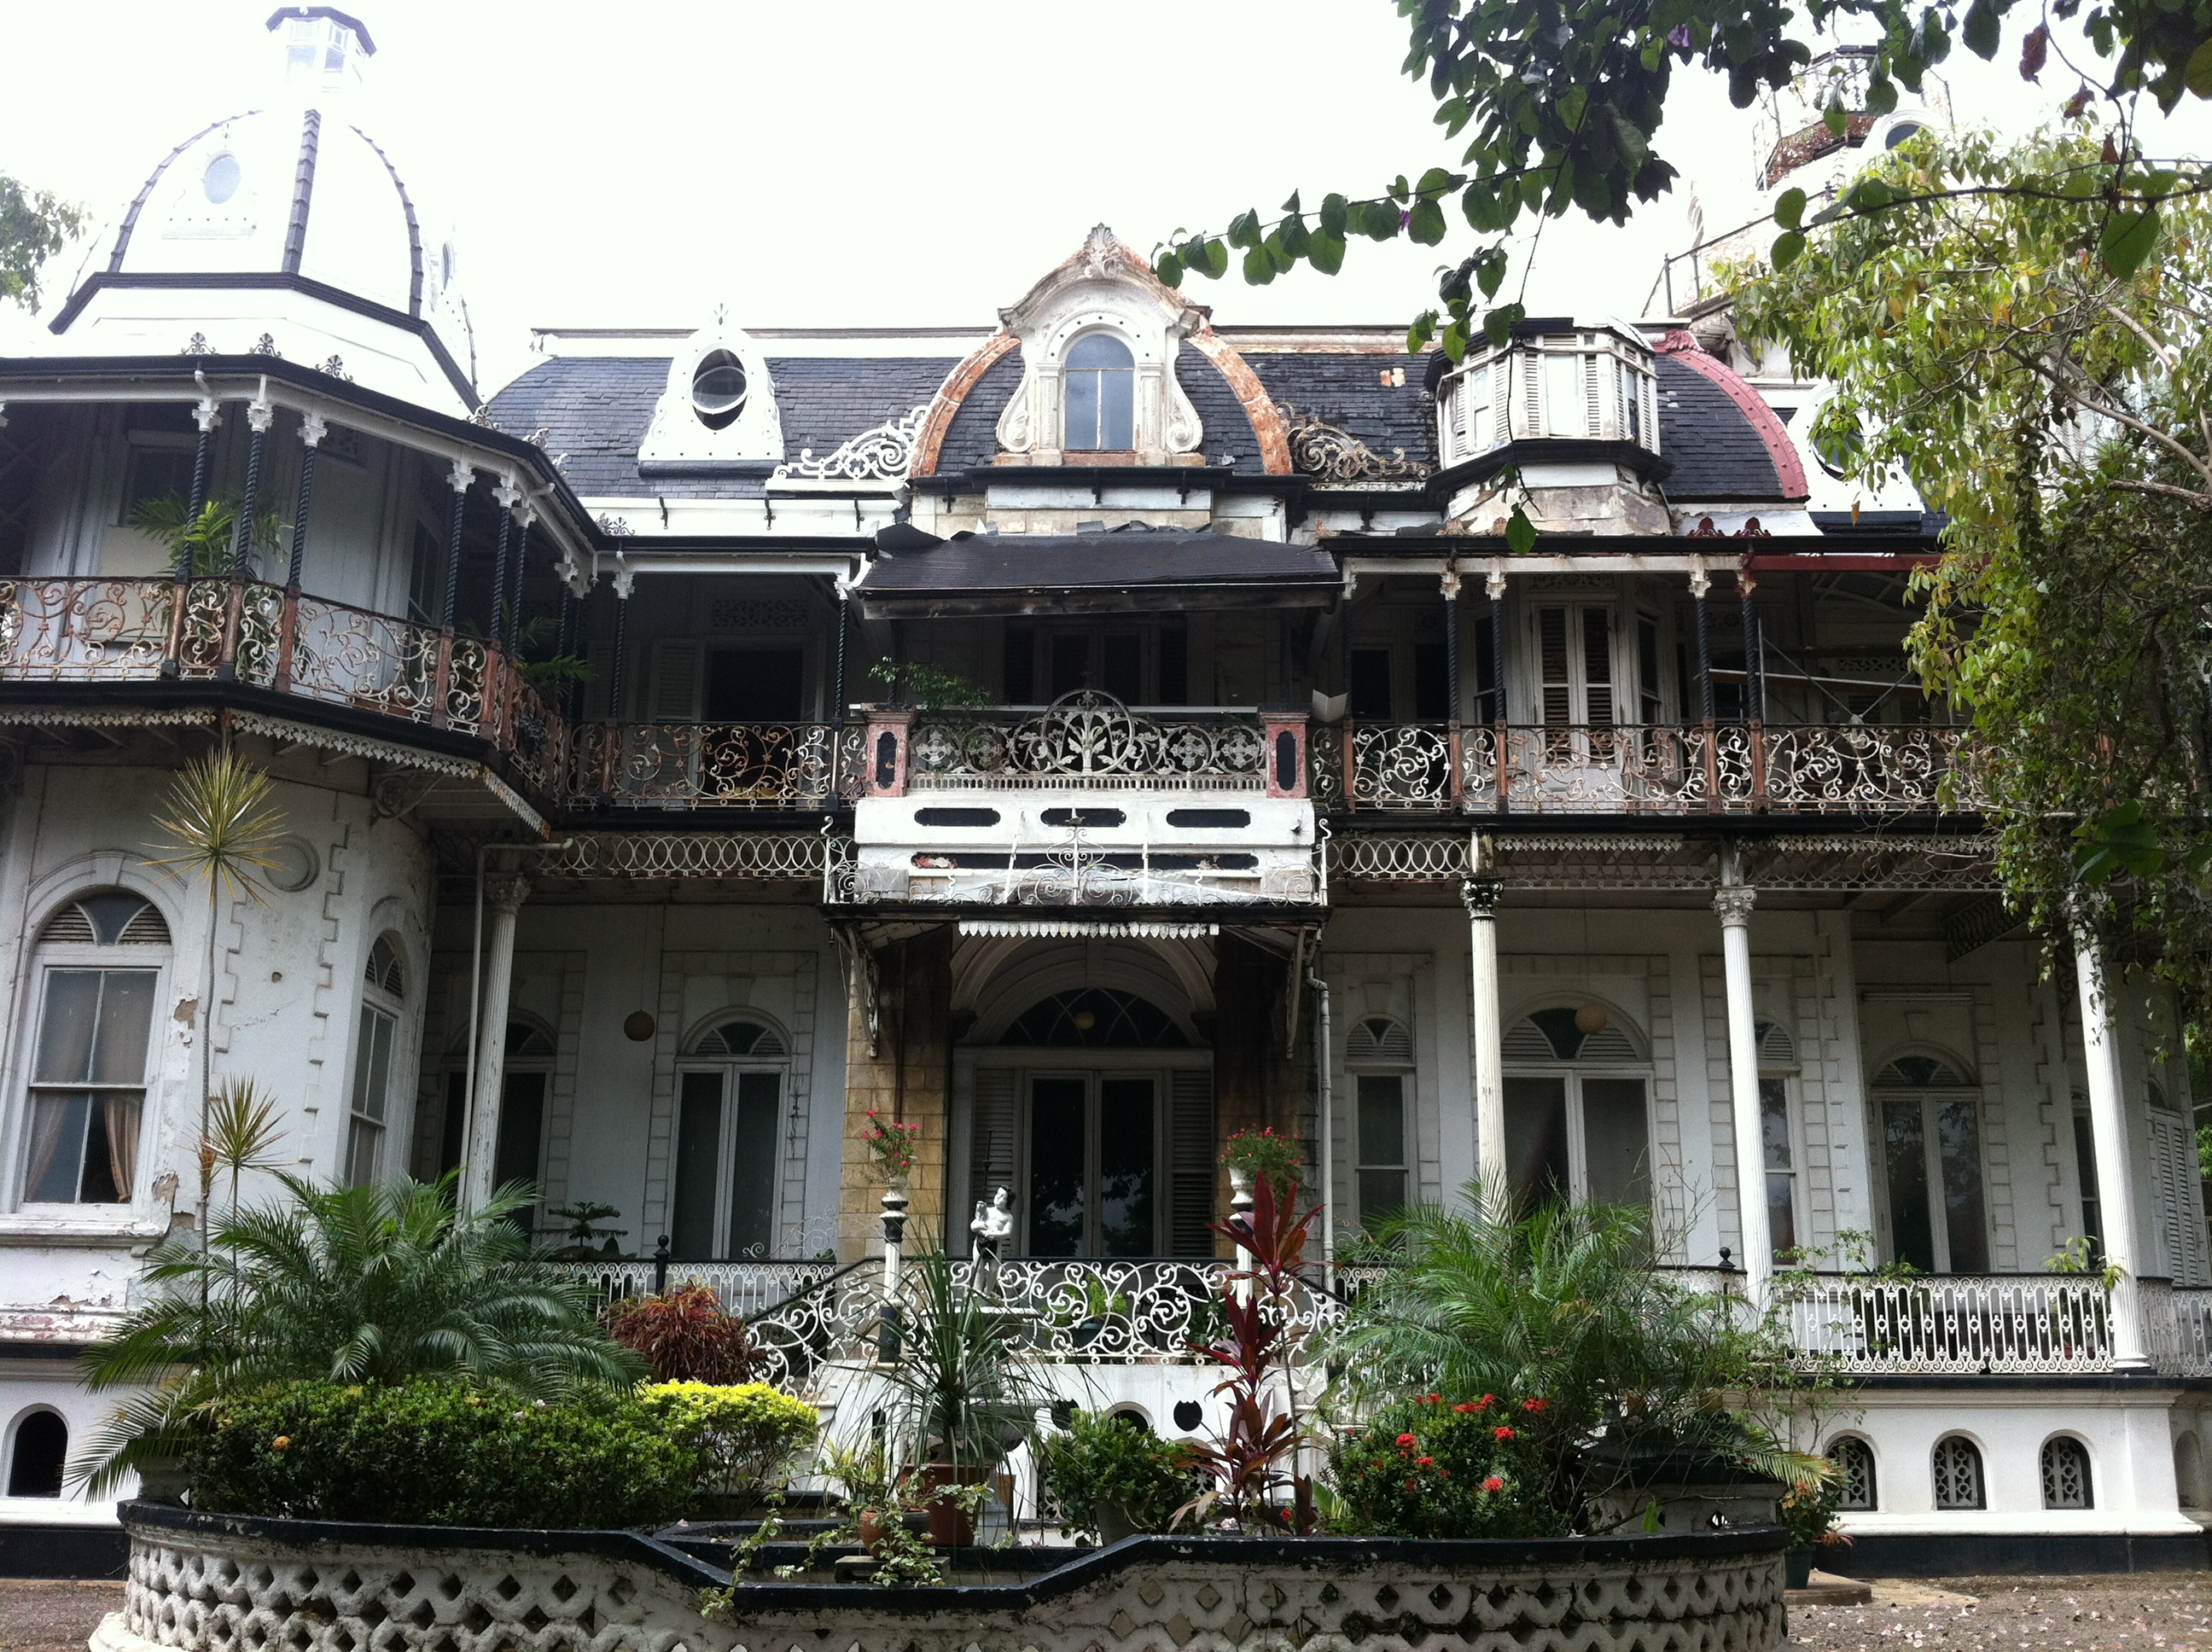 Mille Fleurs Port of Spain, Breathtaking Architecture: The Magnificent Seven In Port of Spain